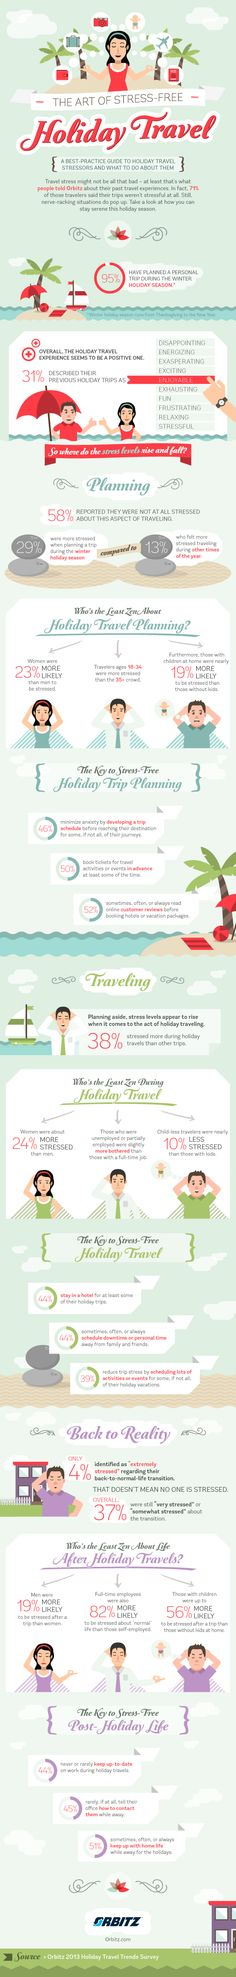 Infographic: The Art of Stress-Free Holiday Travel